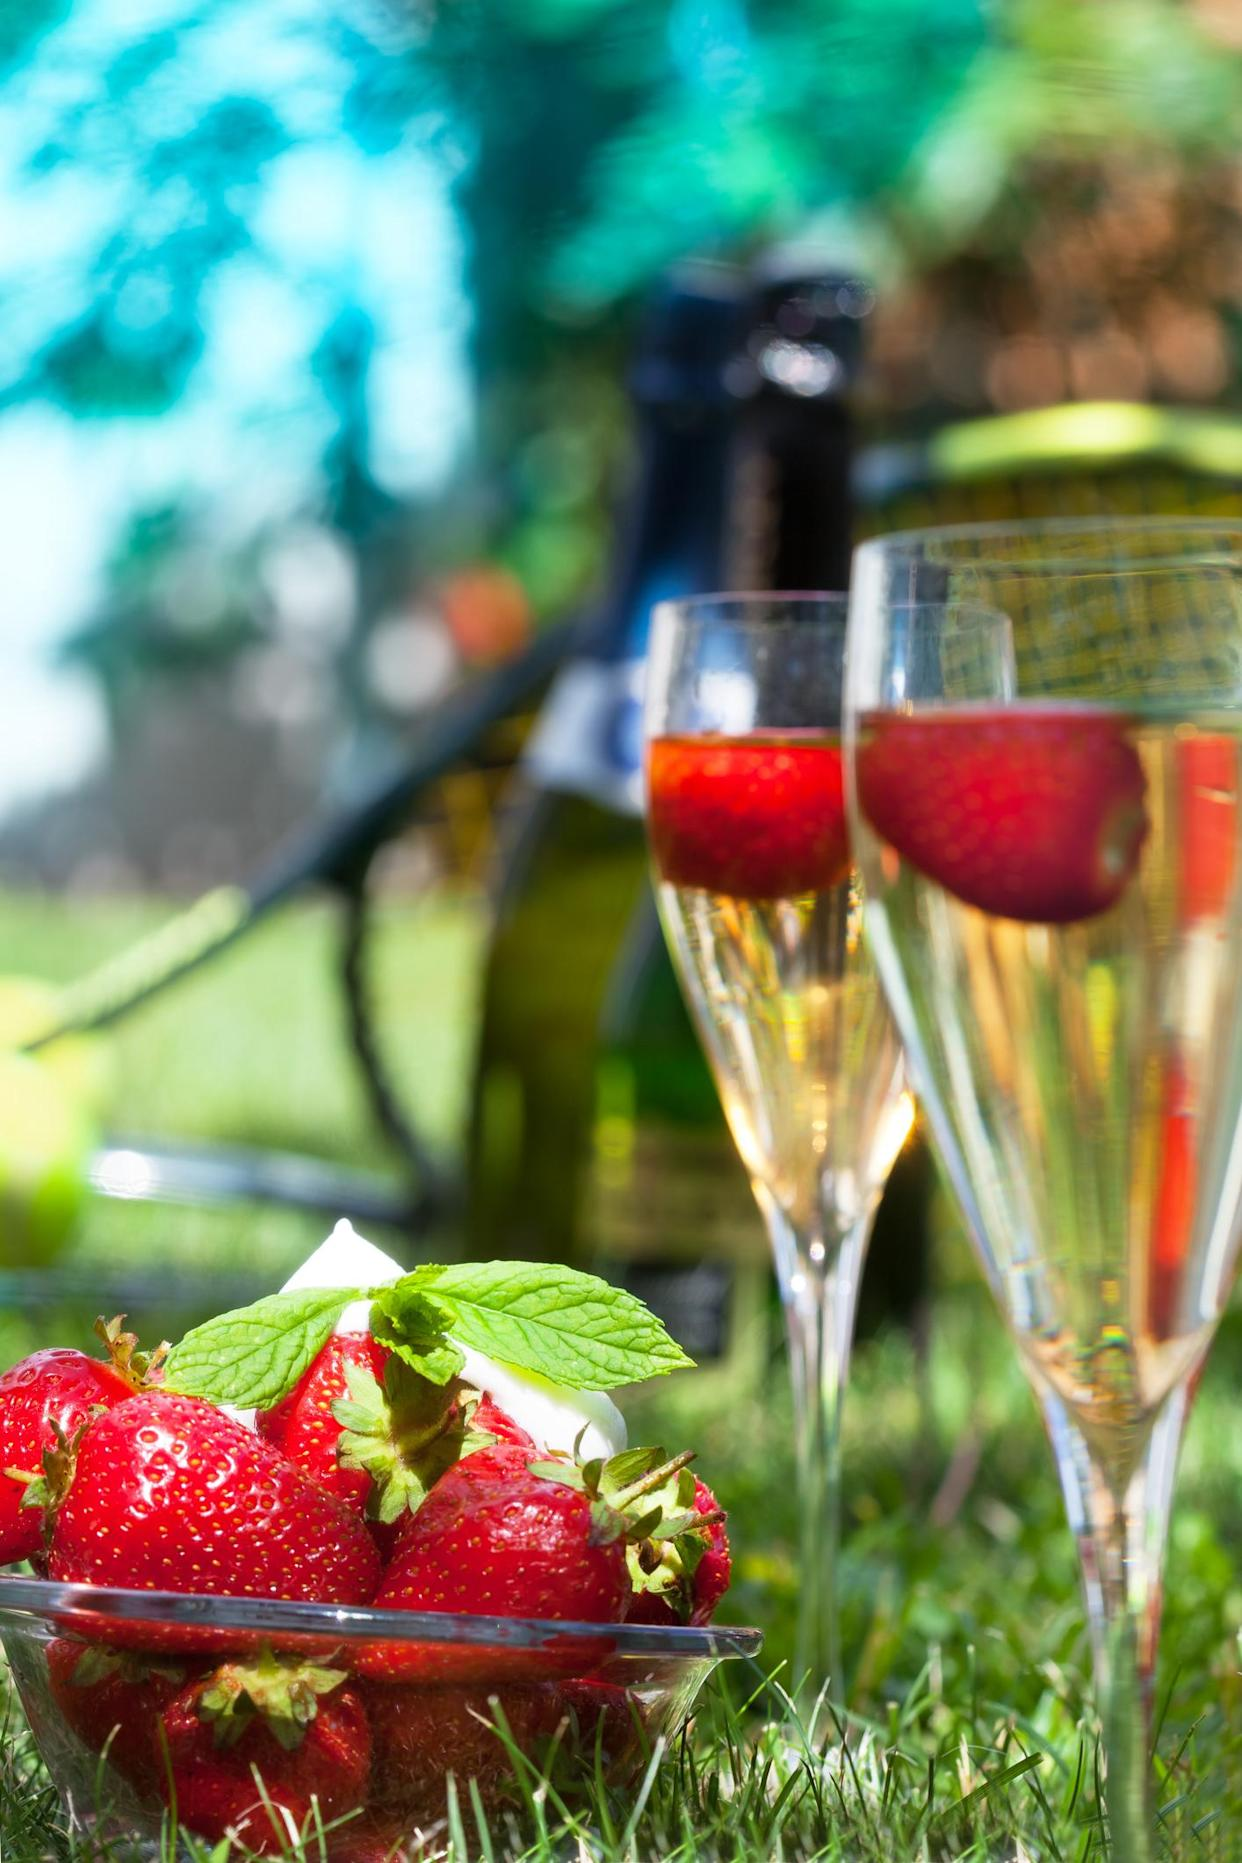 Wimbledon organisers have launched an at home picnic. (Getty Images)